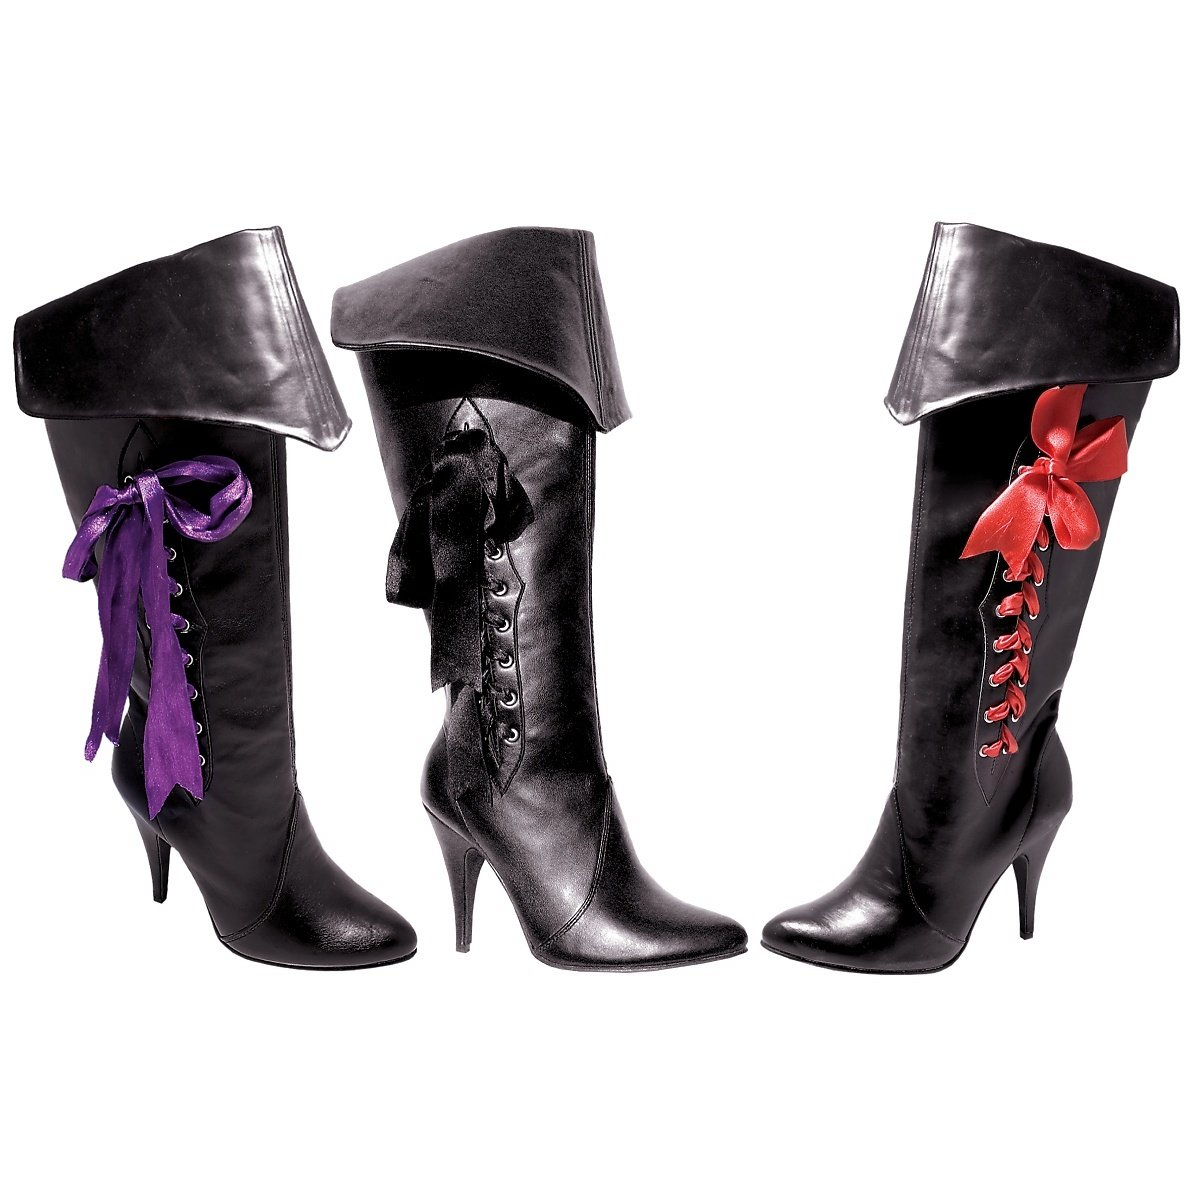 Women's 418 Ribbon Laced Lady Pirate Boots - DeluxeAdultCostumes.com